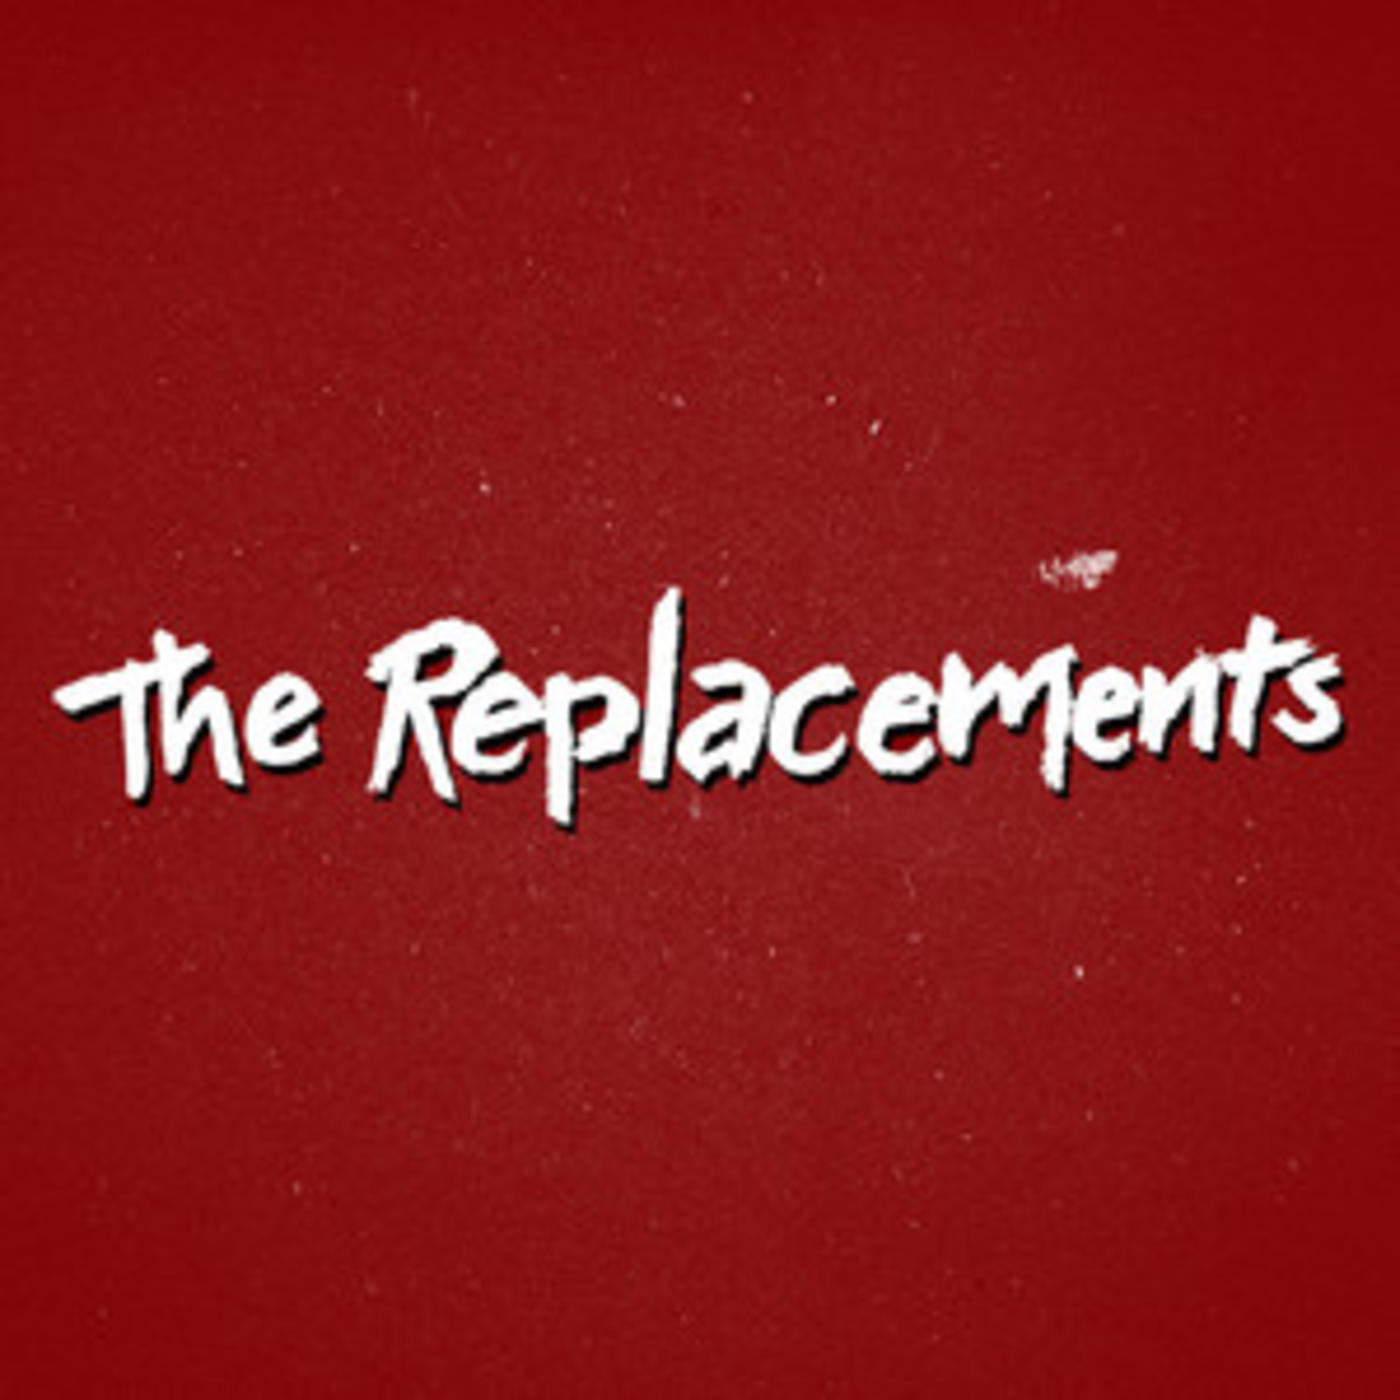 The Replacements Official Playlist - Bastards of Young, Alex Chilton, Left of the Dial, I'll Be You